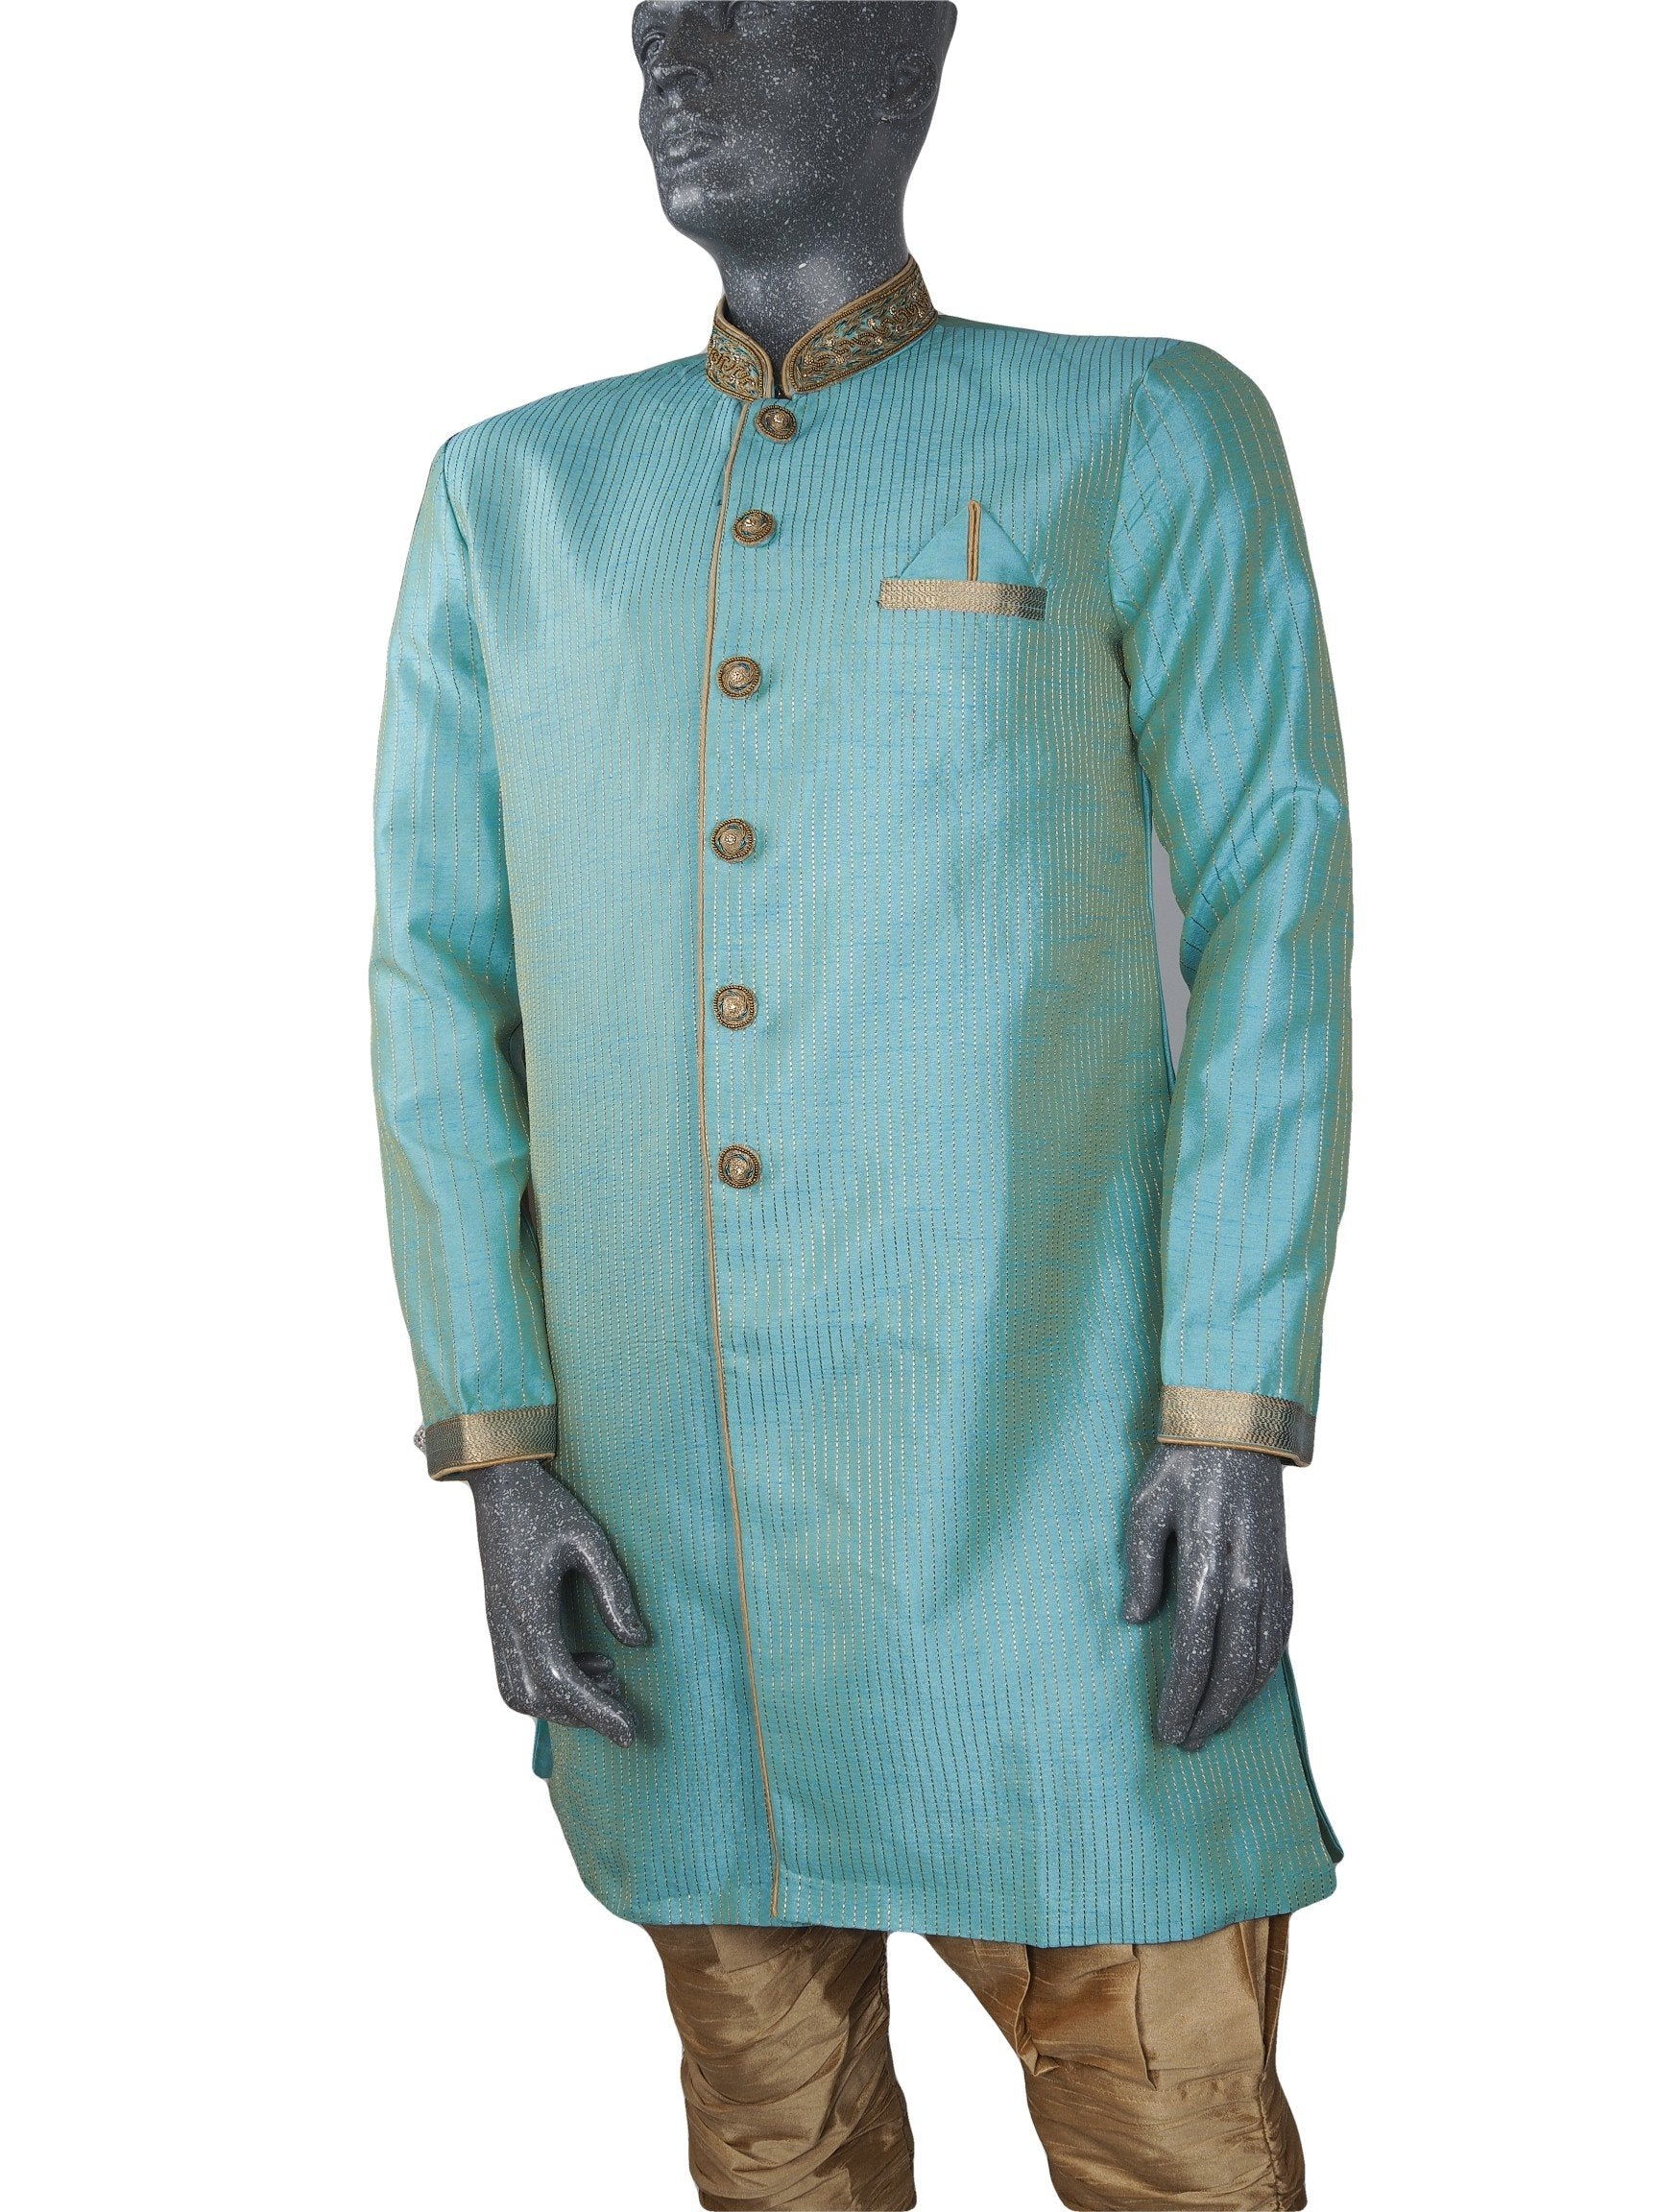 Mens Indian Sherwani Kurta set in Aqua Blue (with gold trousers) -Mahajan VC0819